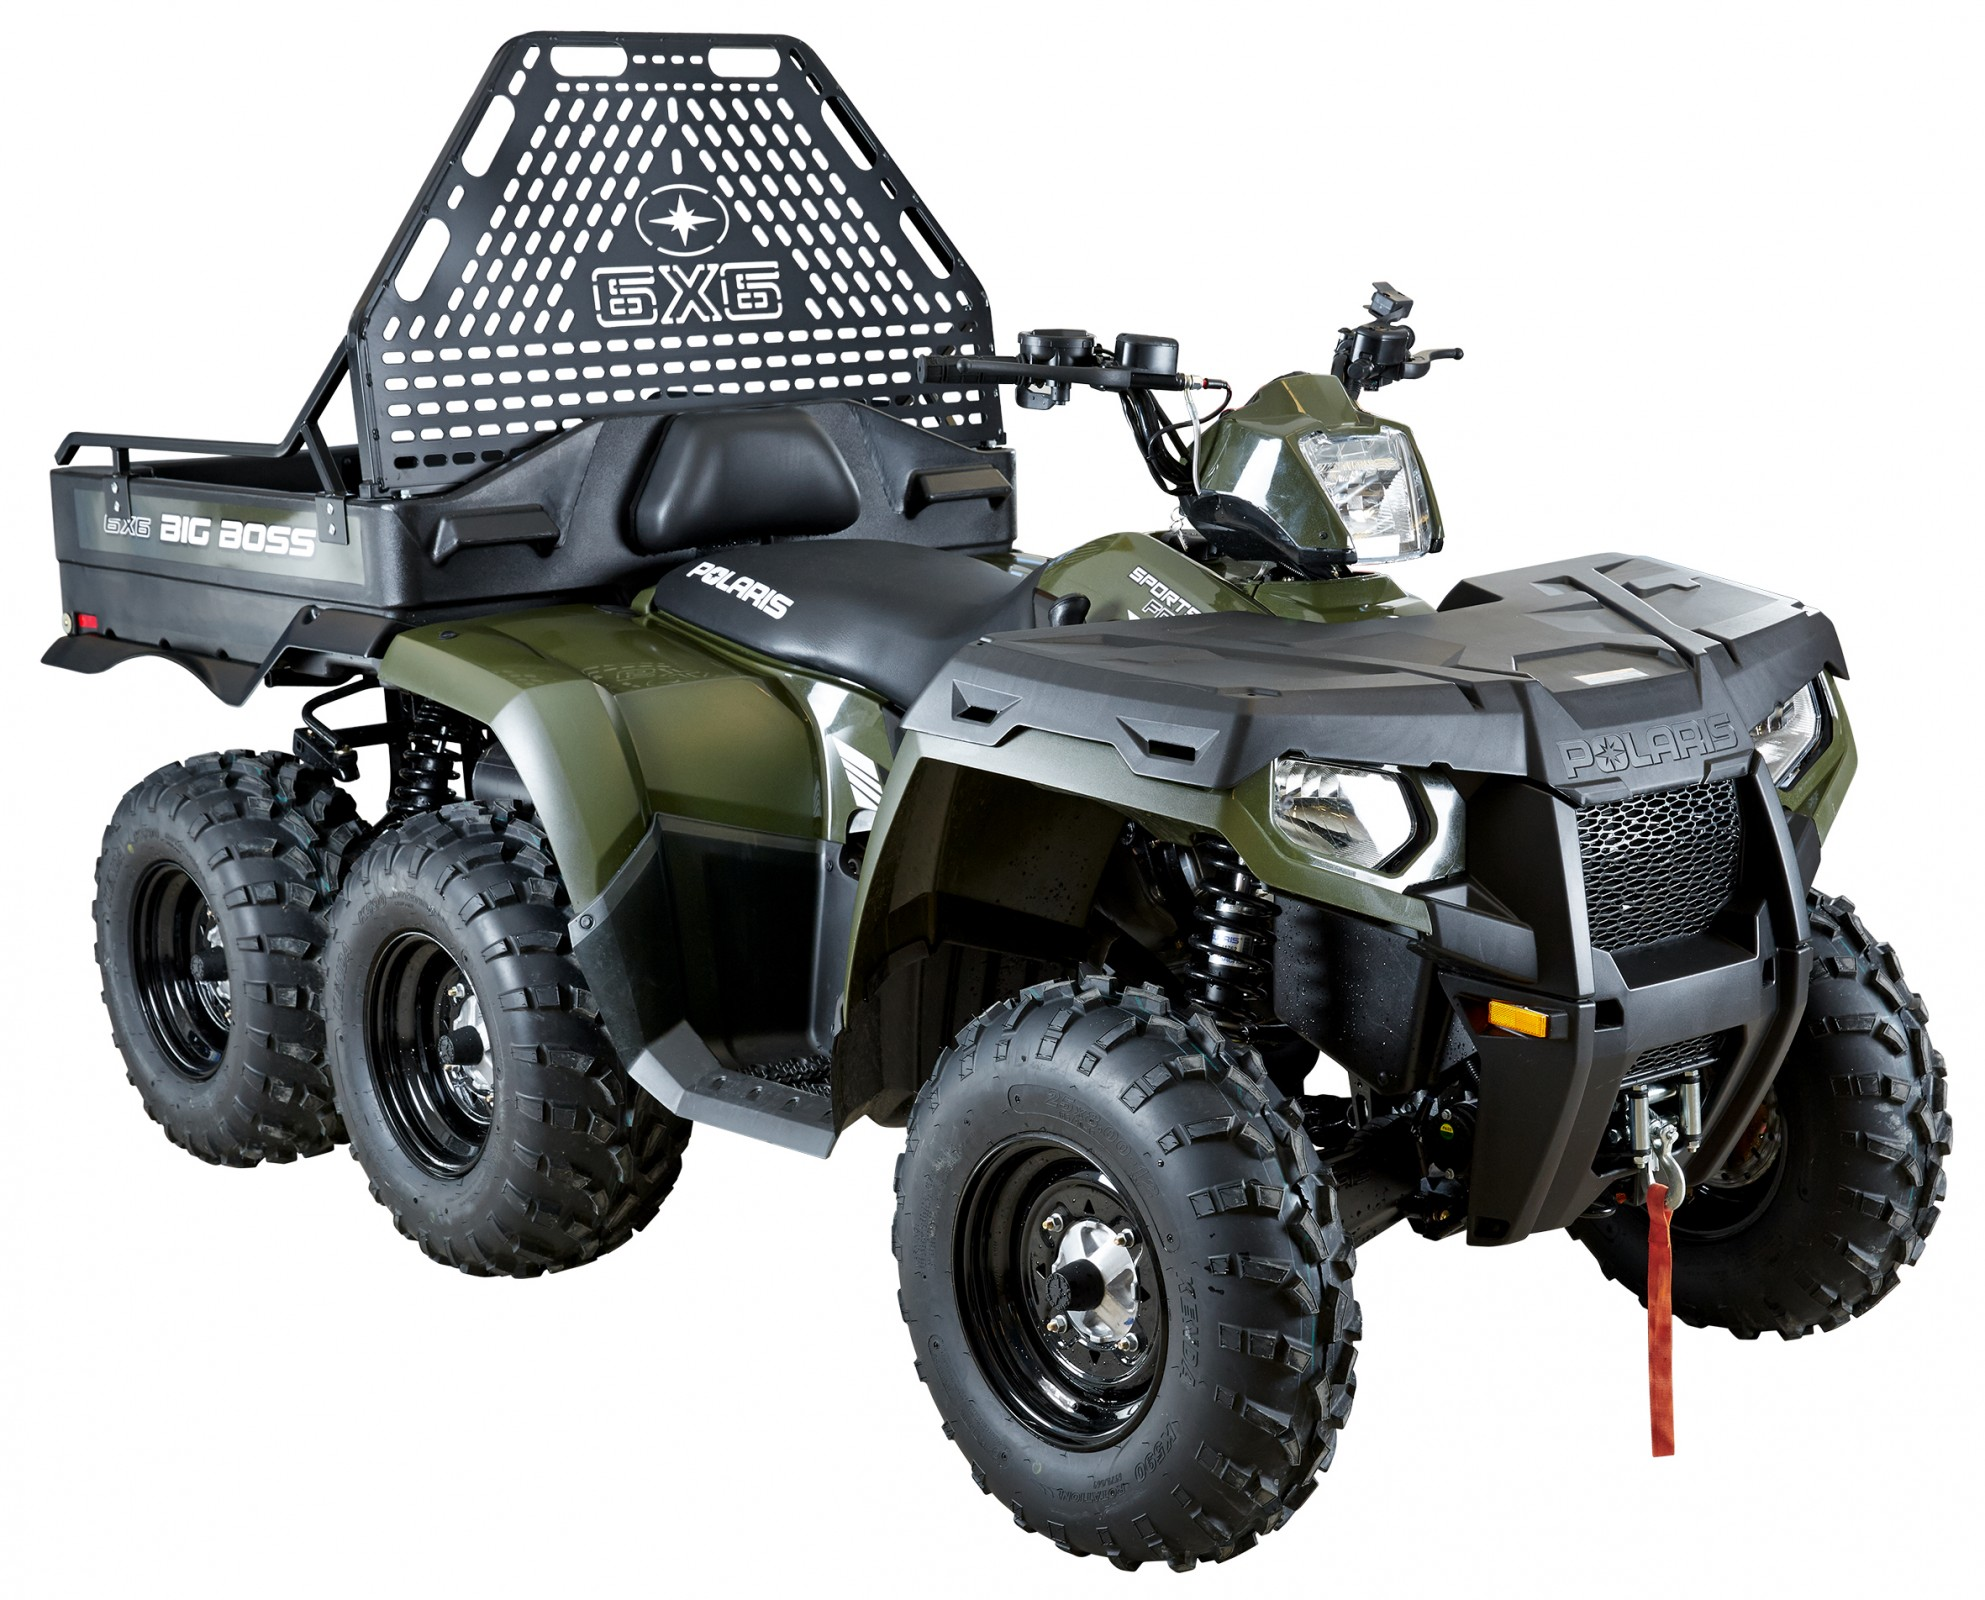 Квадроцикл Polaris Sportsman 800 Big Boss 6x6 Forest